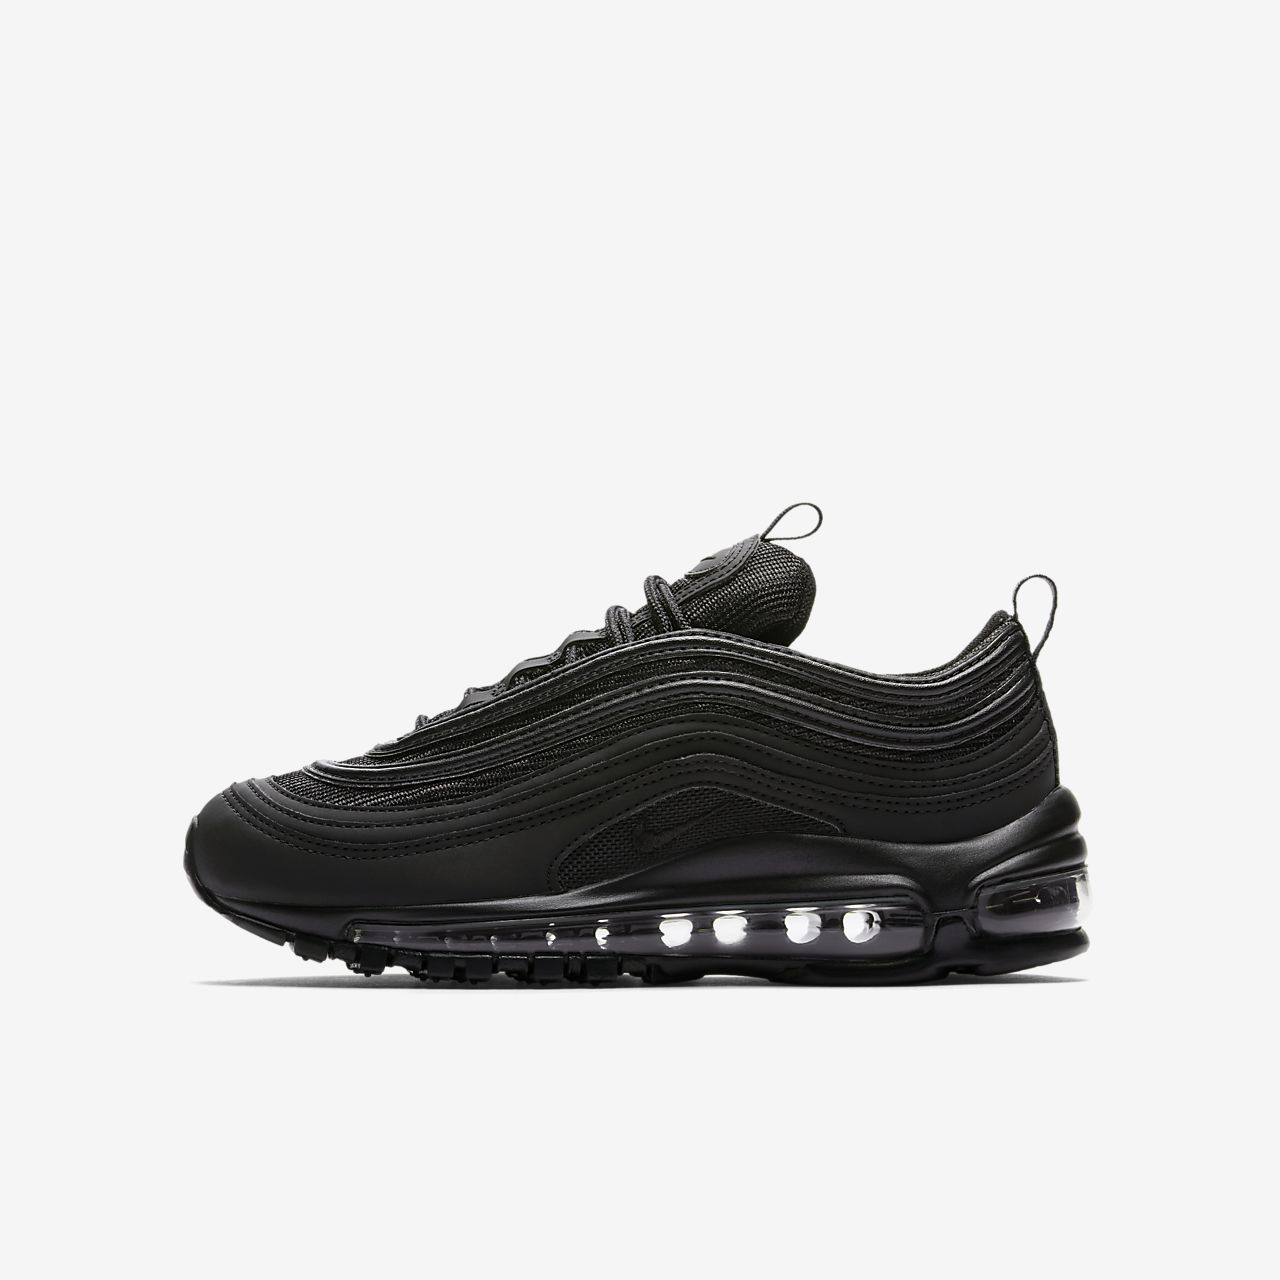 83be66015 Nike Air Max 97 OG Zapatillas - Niño/a. Nike.com ES